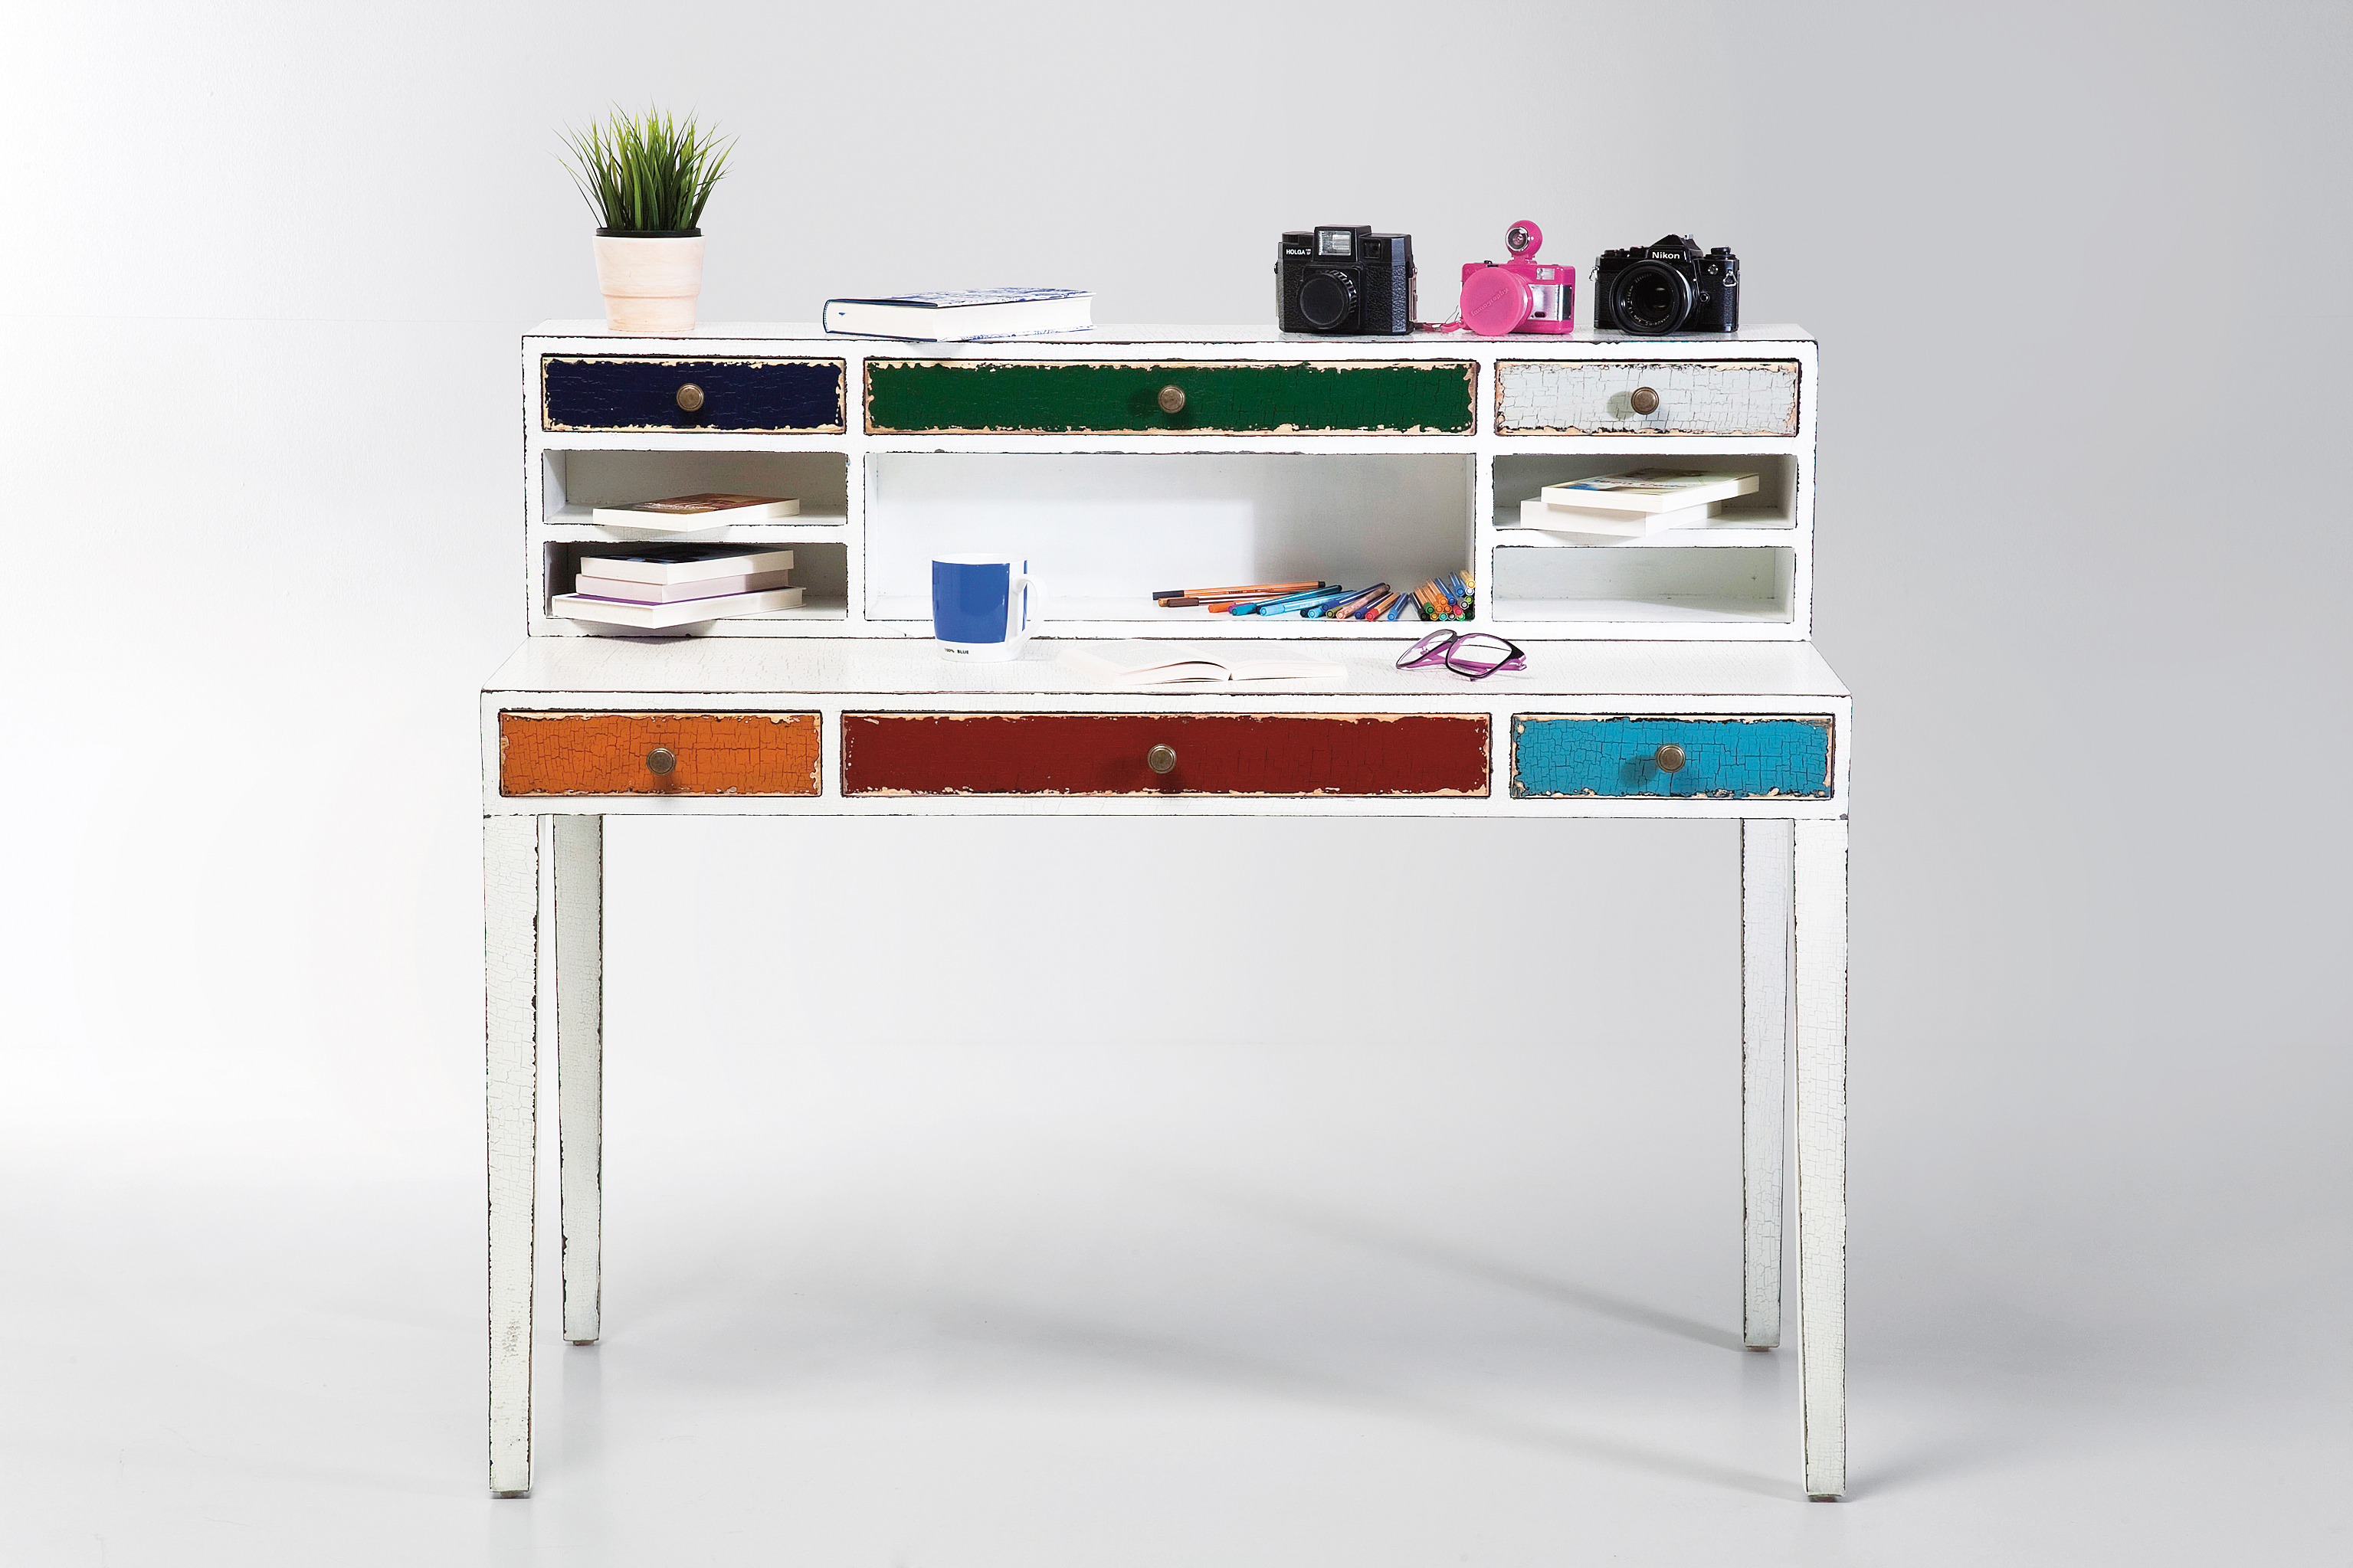 76660 - Desk Halrekin white 1 x 1,2 x 0,55 m 690€ (2)